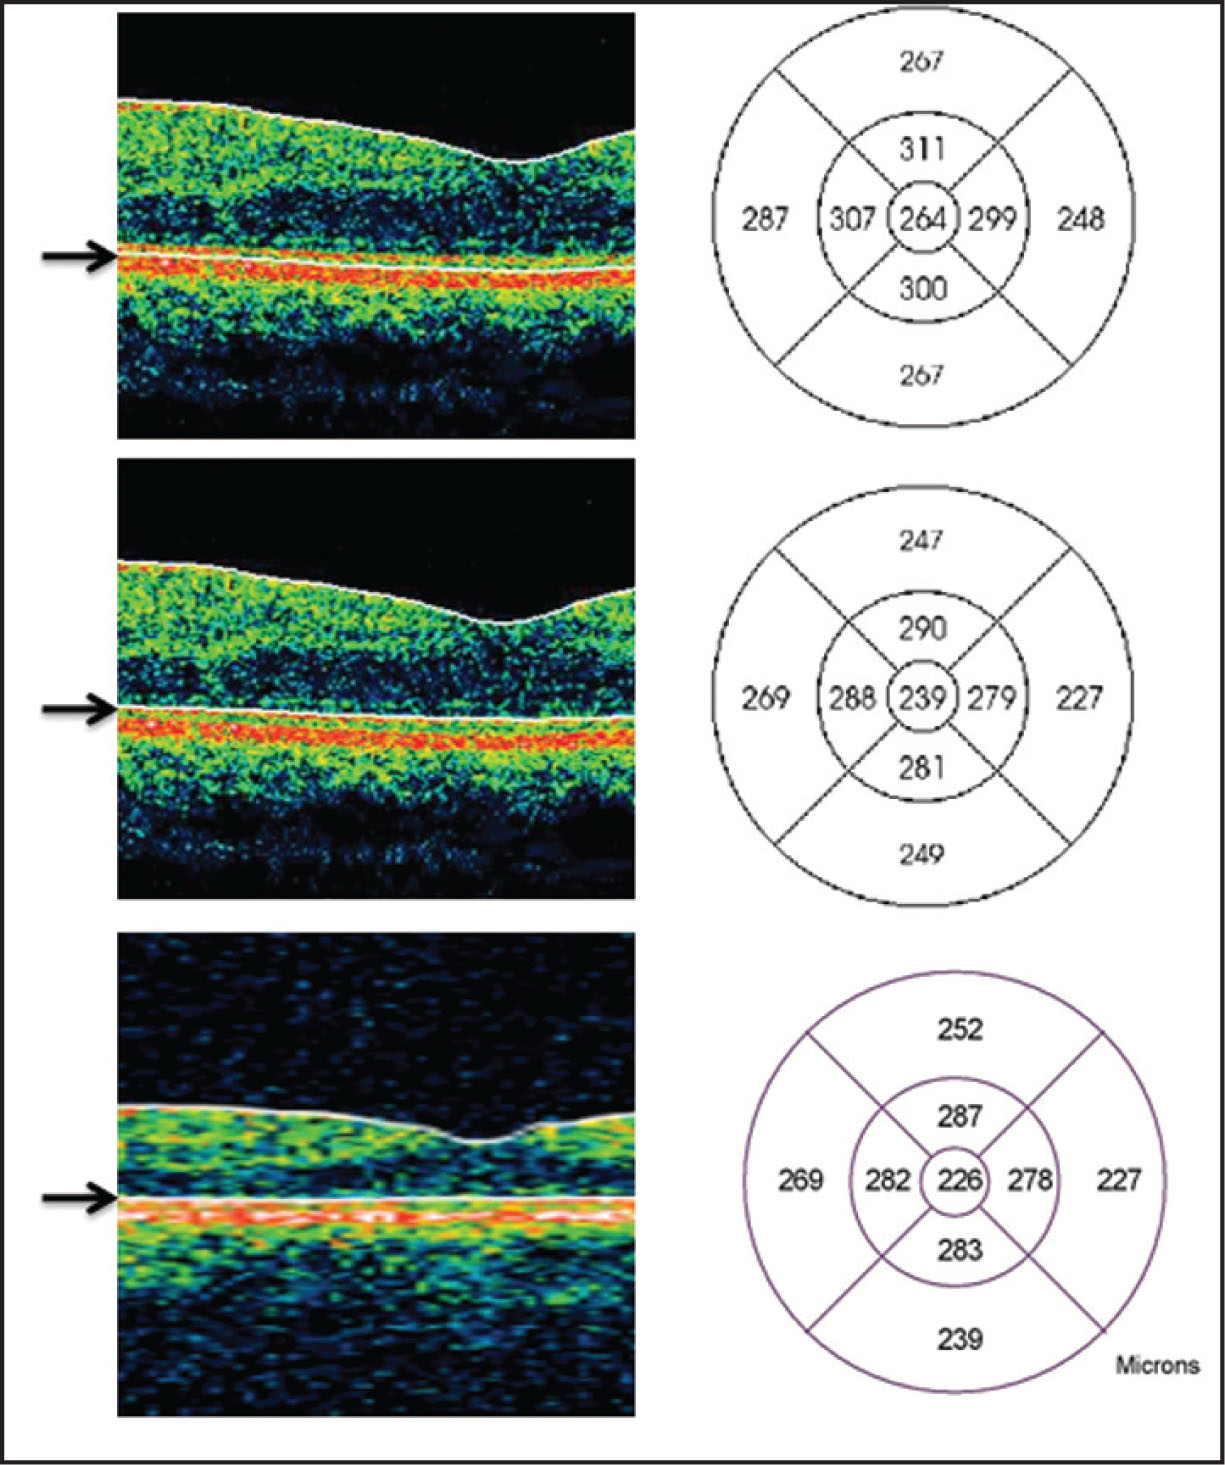 Section of B-Scan Showing Two Different Outer Boundary Limit Options in Topcon 3D OCT 1000 (Topcon Medical Systems, Paramus, NJ): Upper Border of Retinal Pigment Epithelium (center Subfield Thickness = 264 μm, Top) and Inner Segment–Outer Segment Junction (center Subfield Thickness = 239 μm, Middle). Corresponding Stratus (Carl Zeiss Meditec, Inc., Dublin, CA) Image (center Subfield Thickness = 226 μm, Bottom) Is Shown for Comparison.